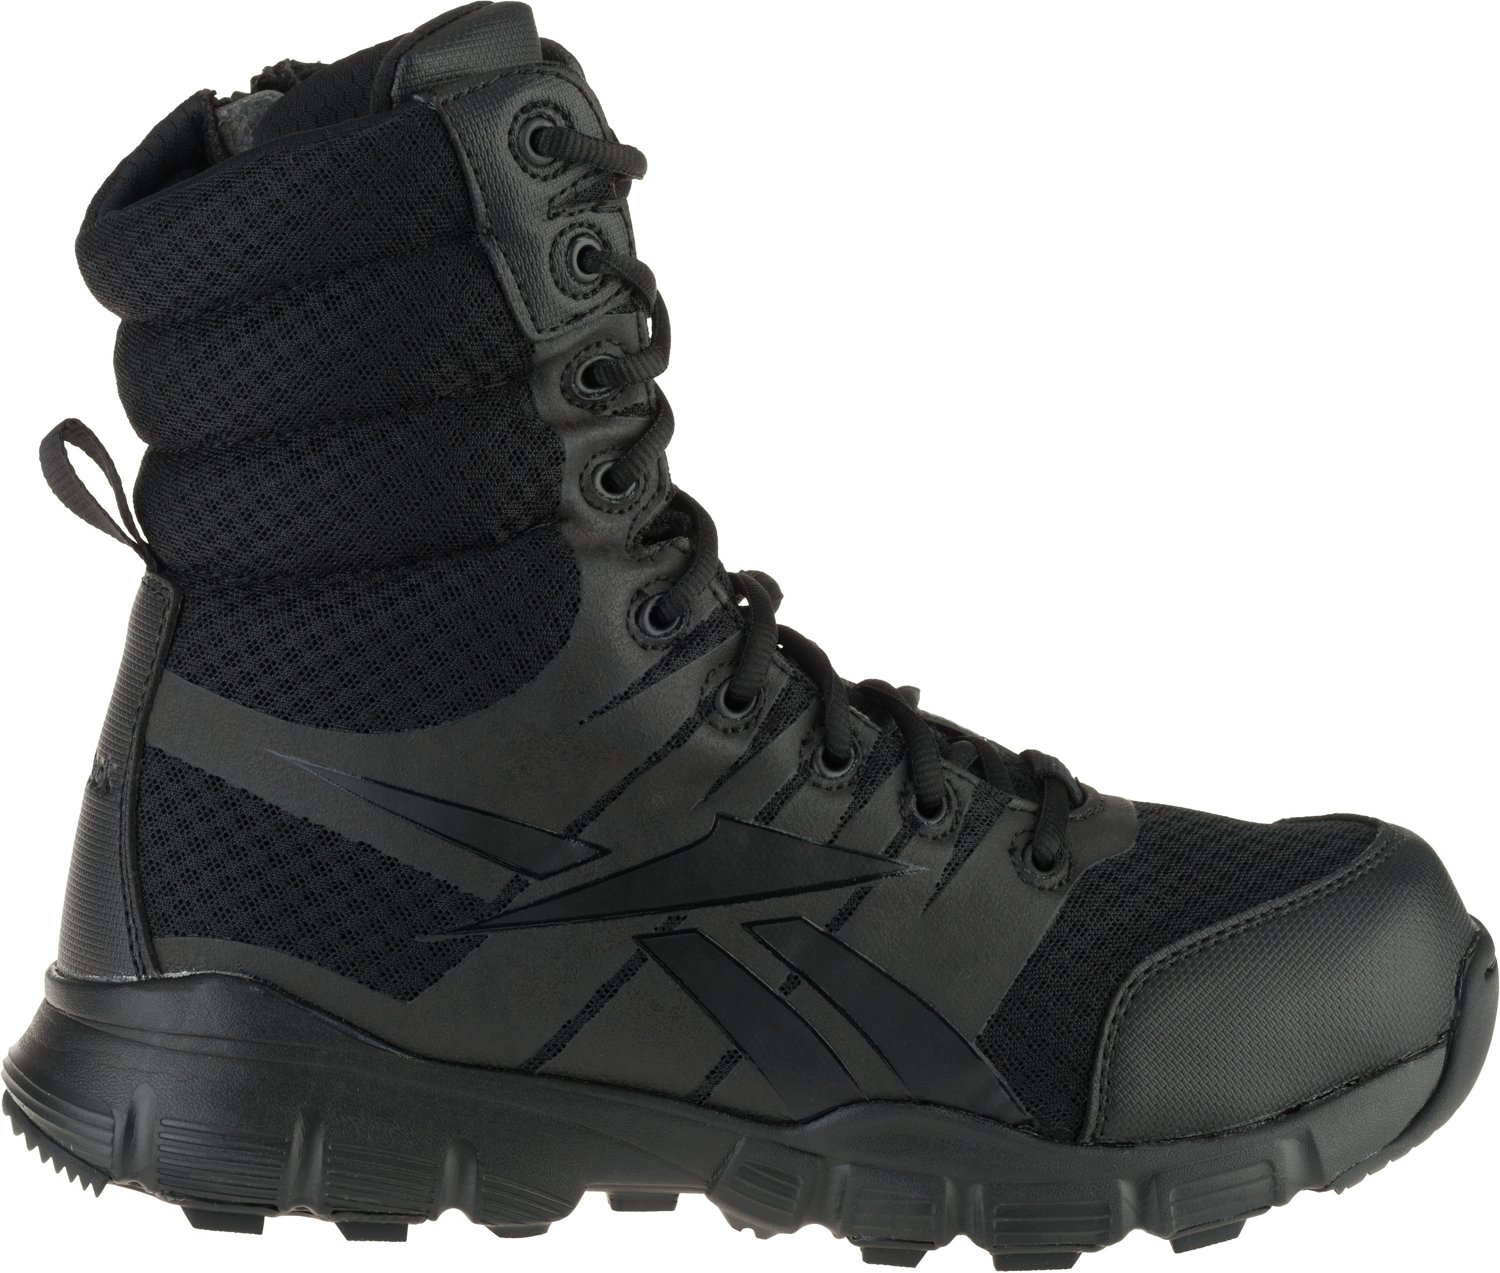 Display product reviews for Reebok Men s Dauntless Ultralight Tactical Boots 9502712b0